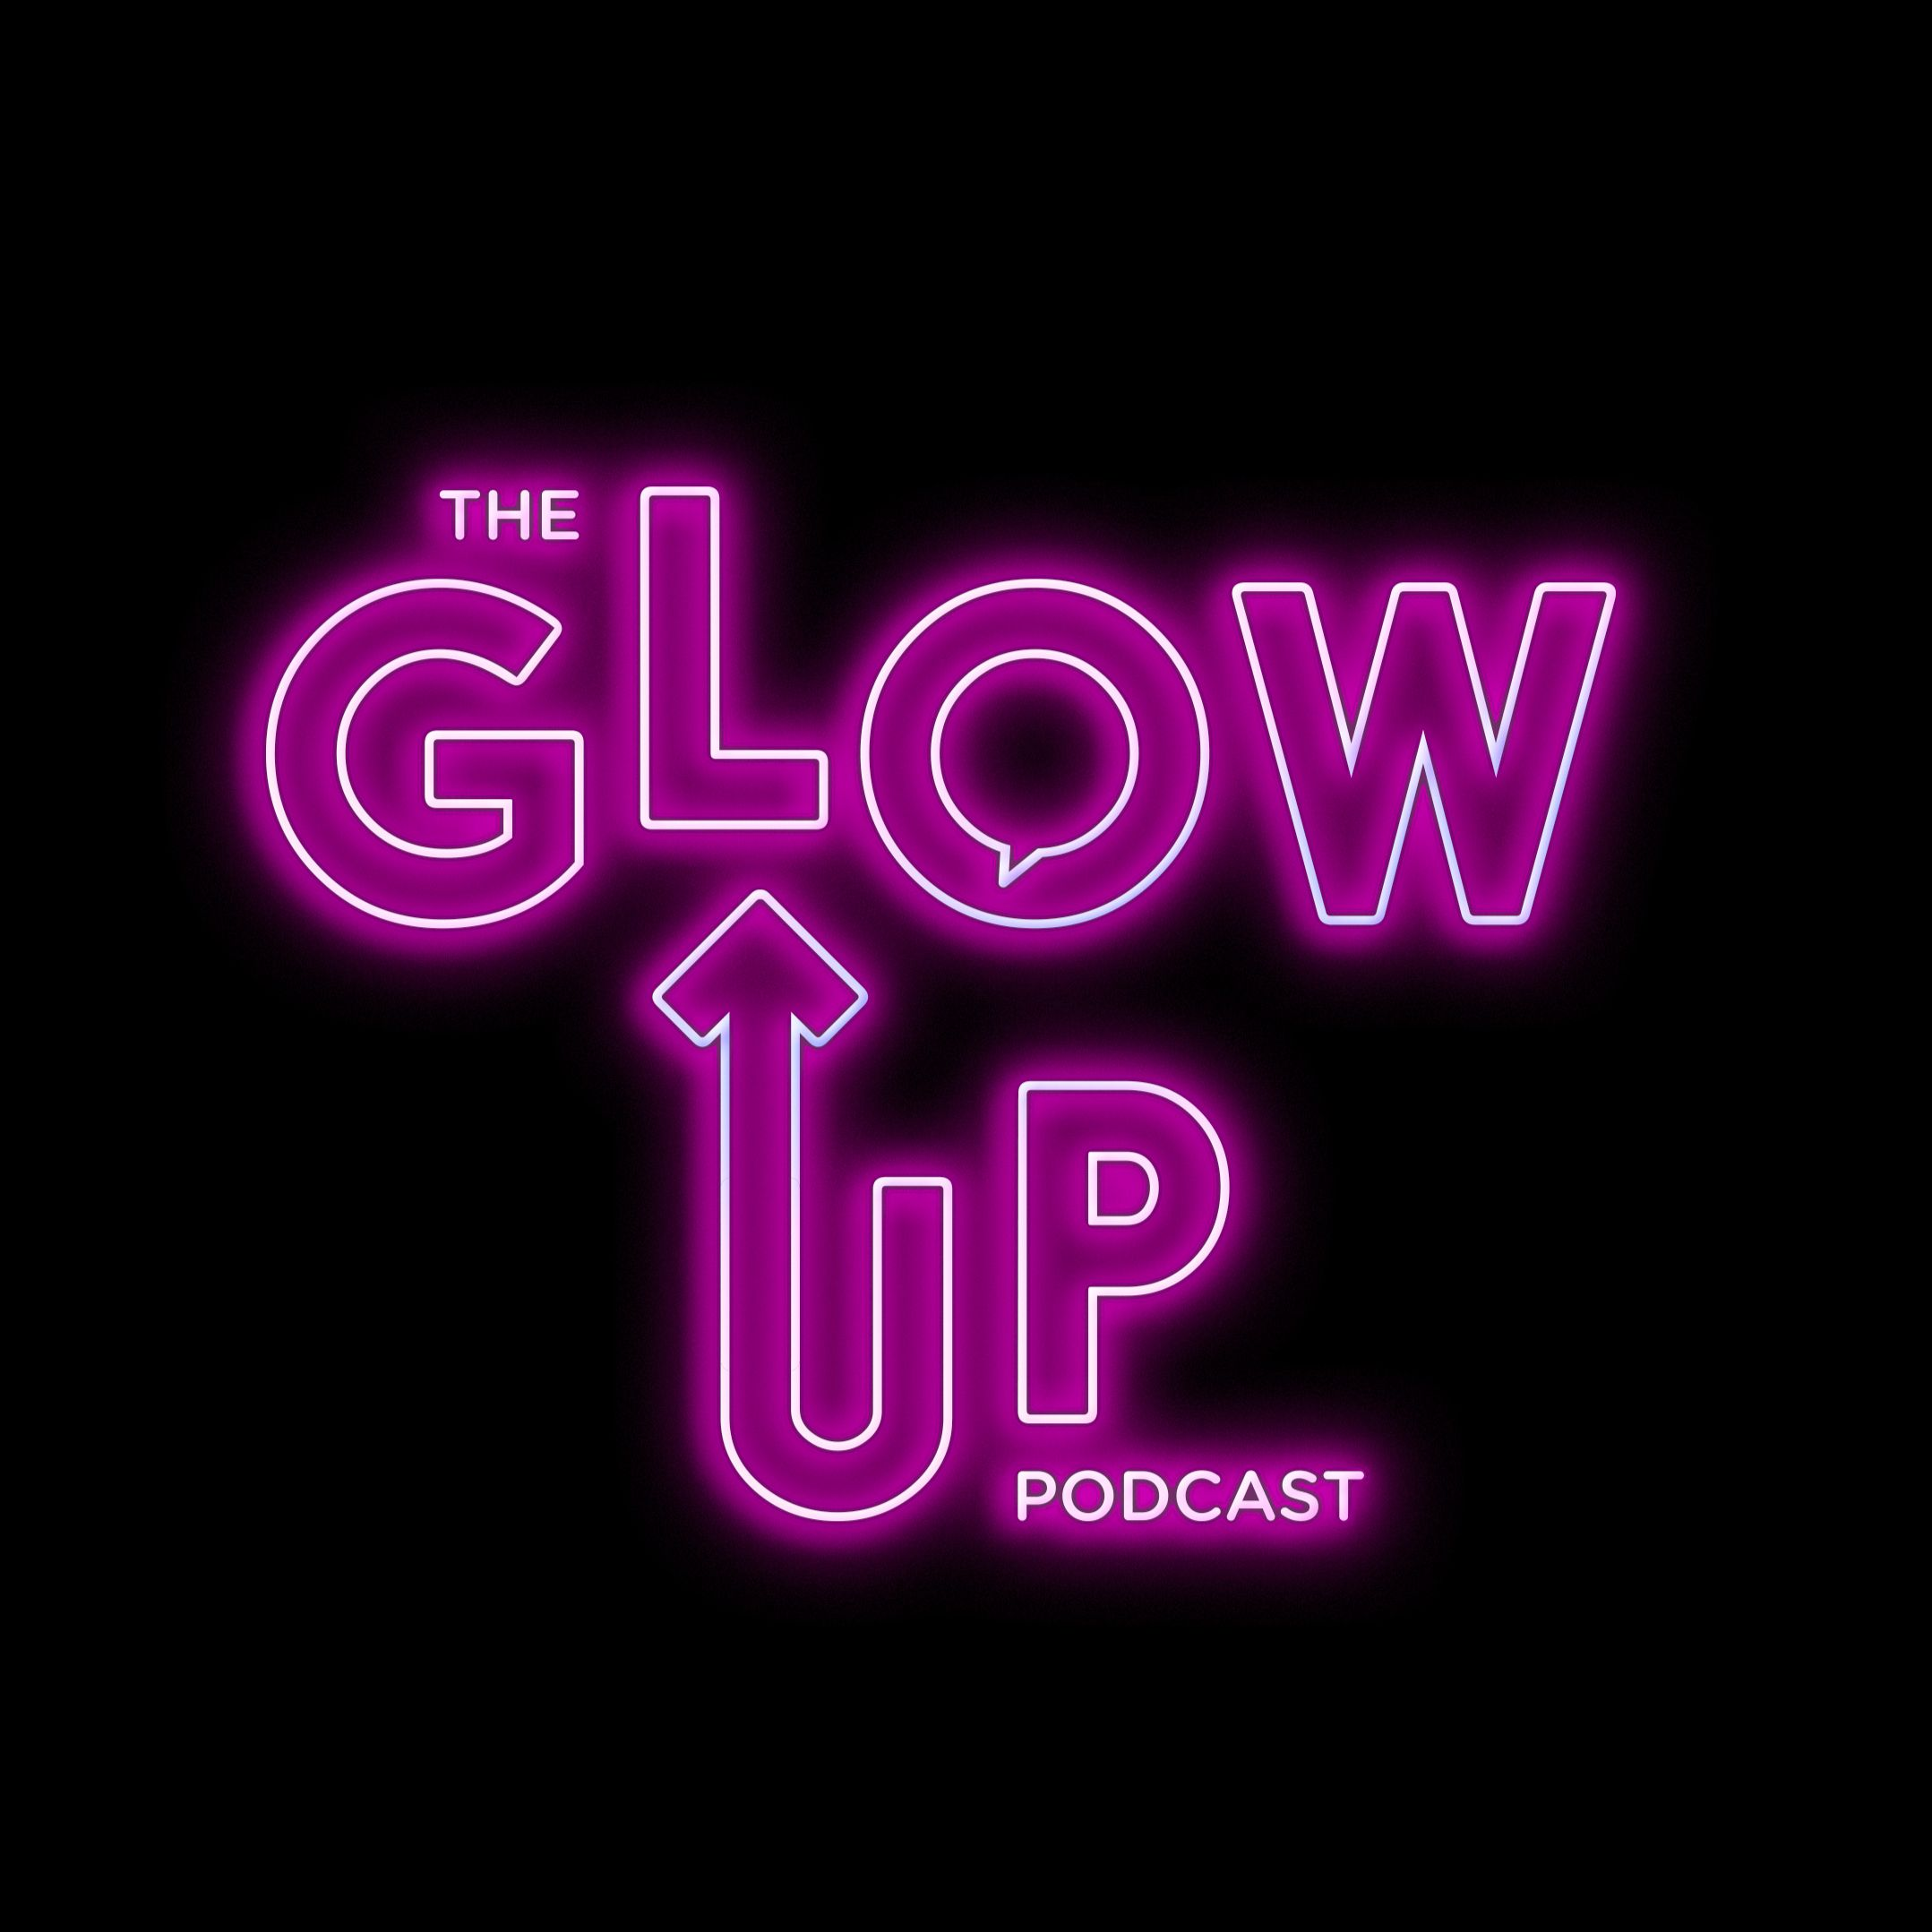 The Glow Up Podcast S Stream On Soundcloud Hear The World S Sounds